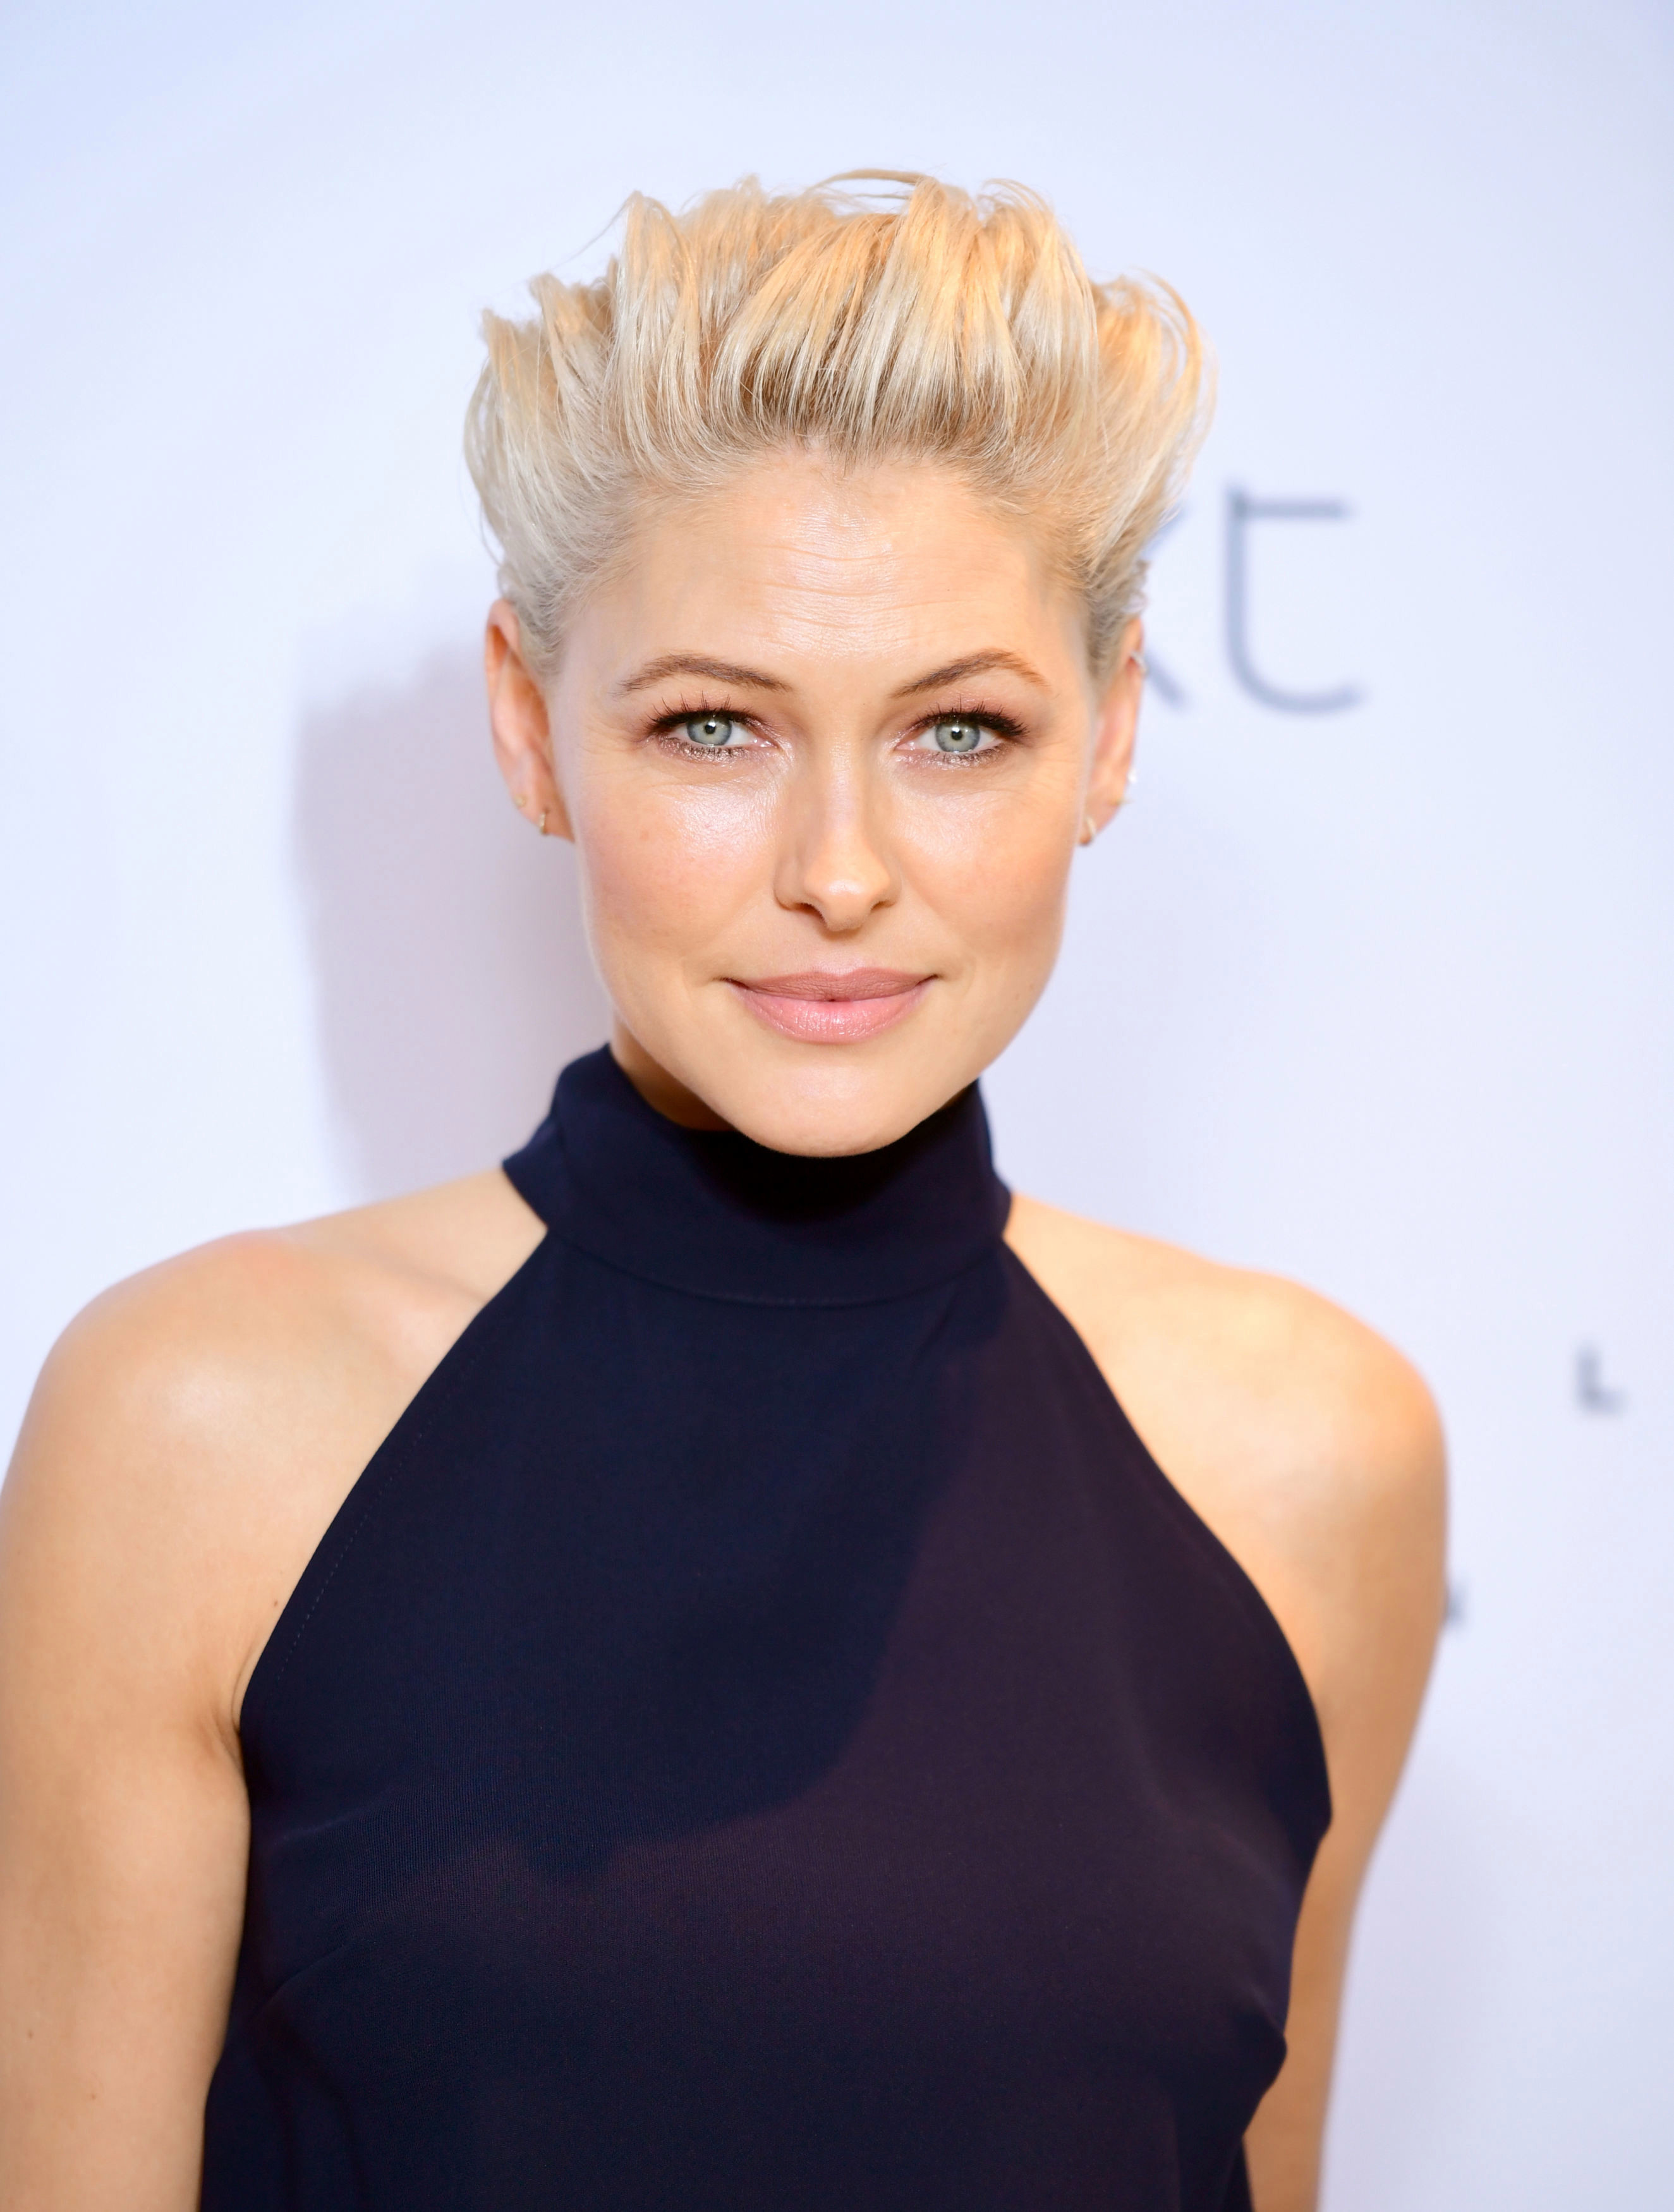 The hottest hairstyle this winter is the quiff, look to celebs like Emma Wills for style inspo